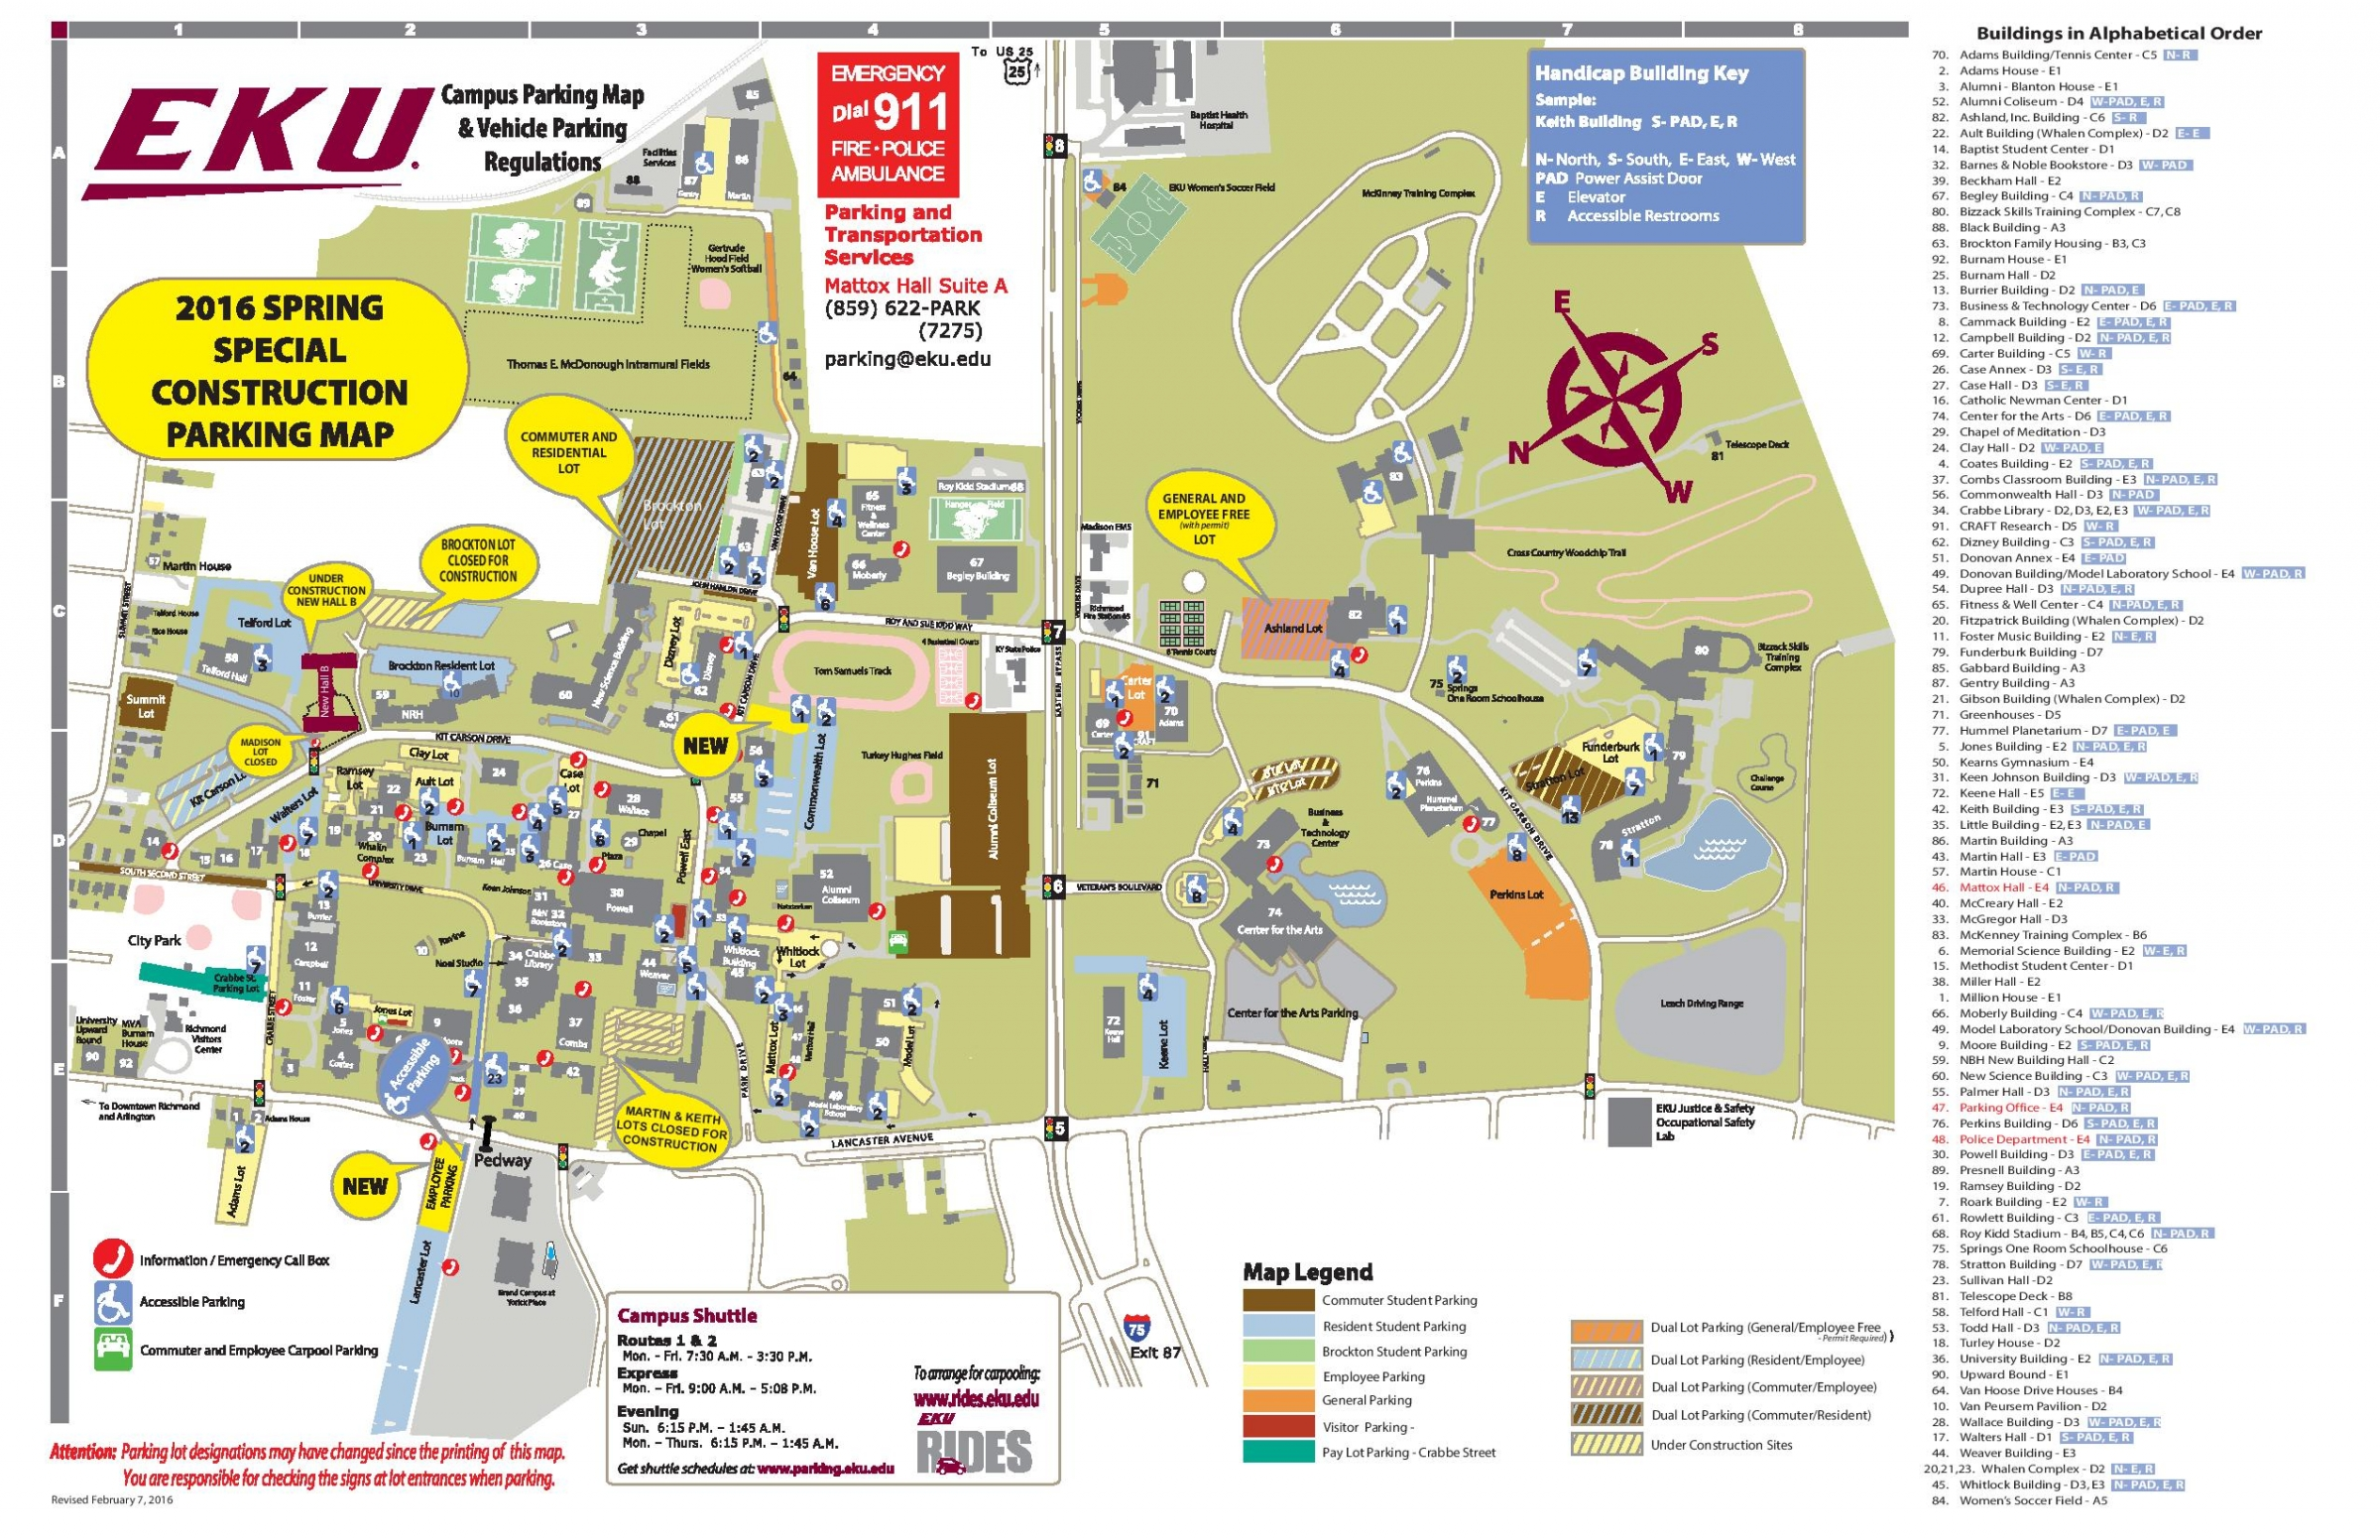 Campus Parking Update and Changes for February 7, 2016 | EKU